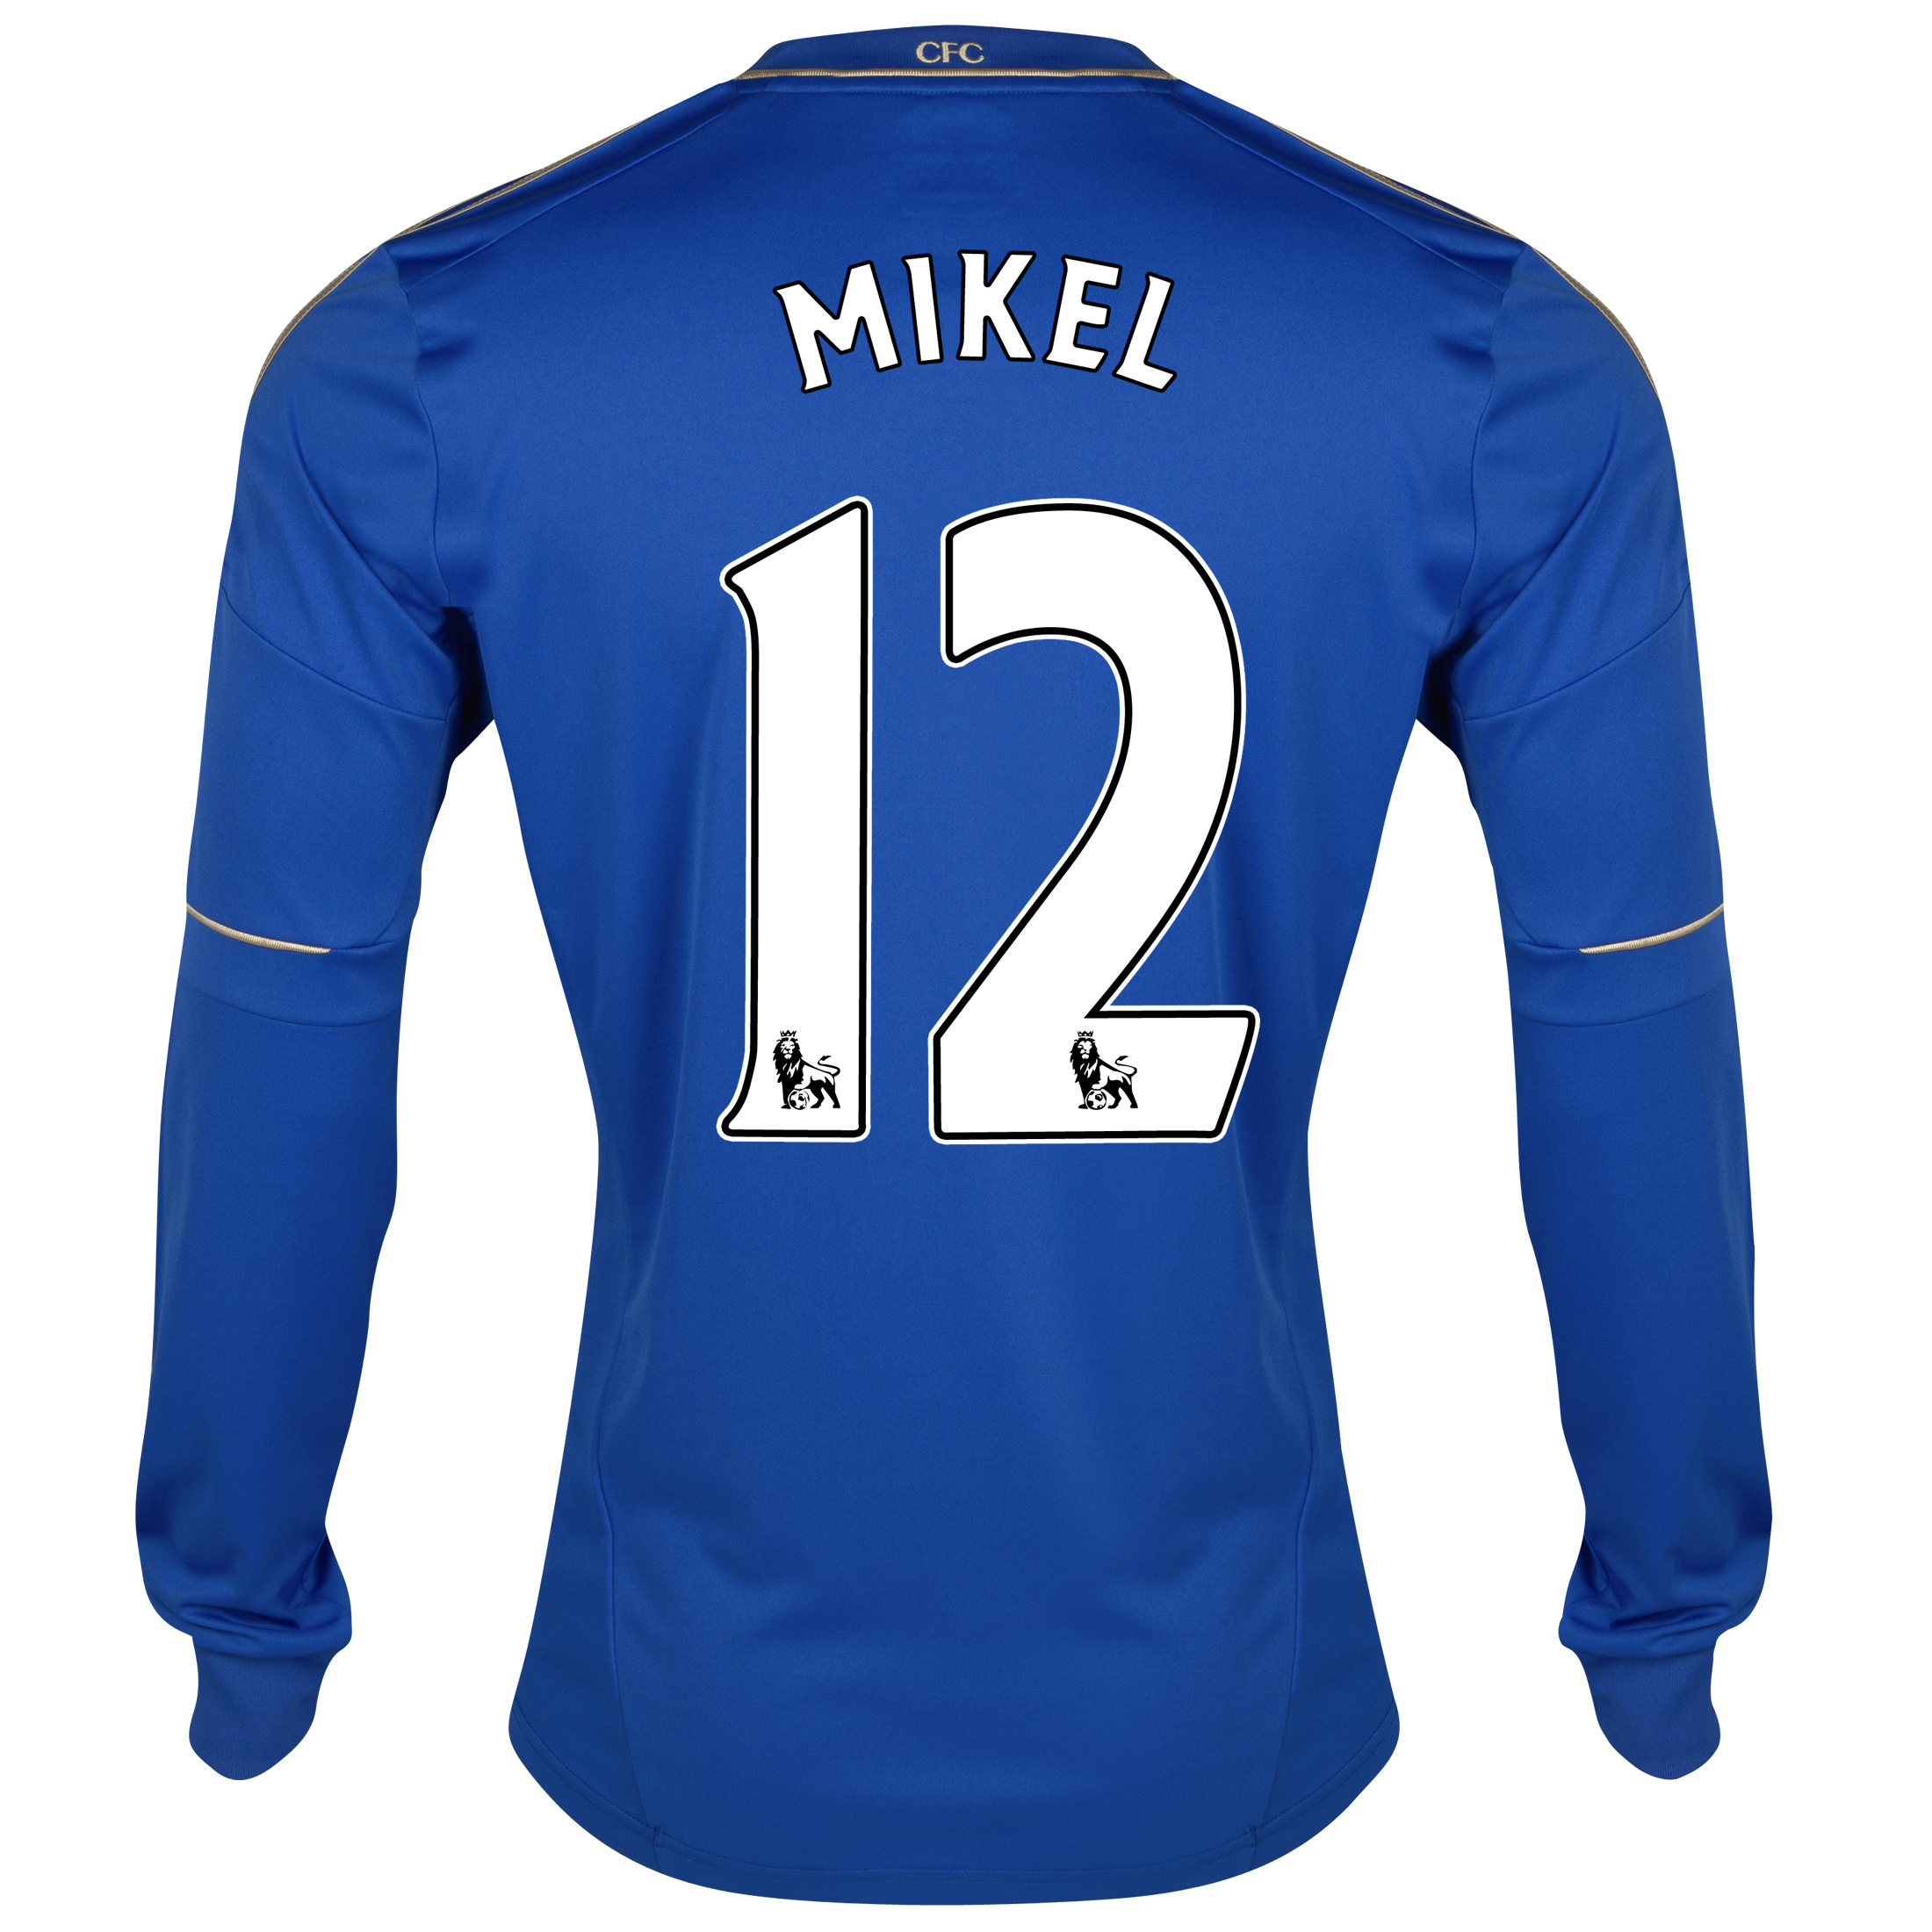 Chelsea Home Shirt 2012/13 - Long Sleeved - Youths with Mikel 12 printing